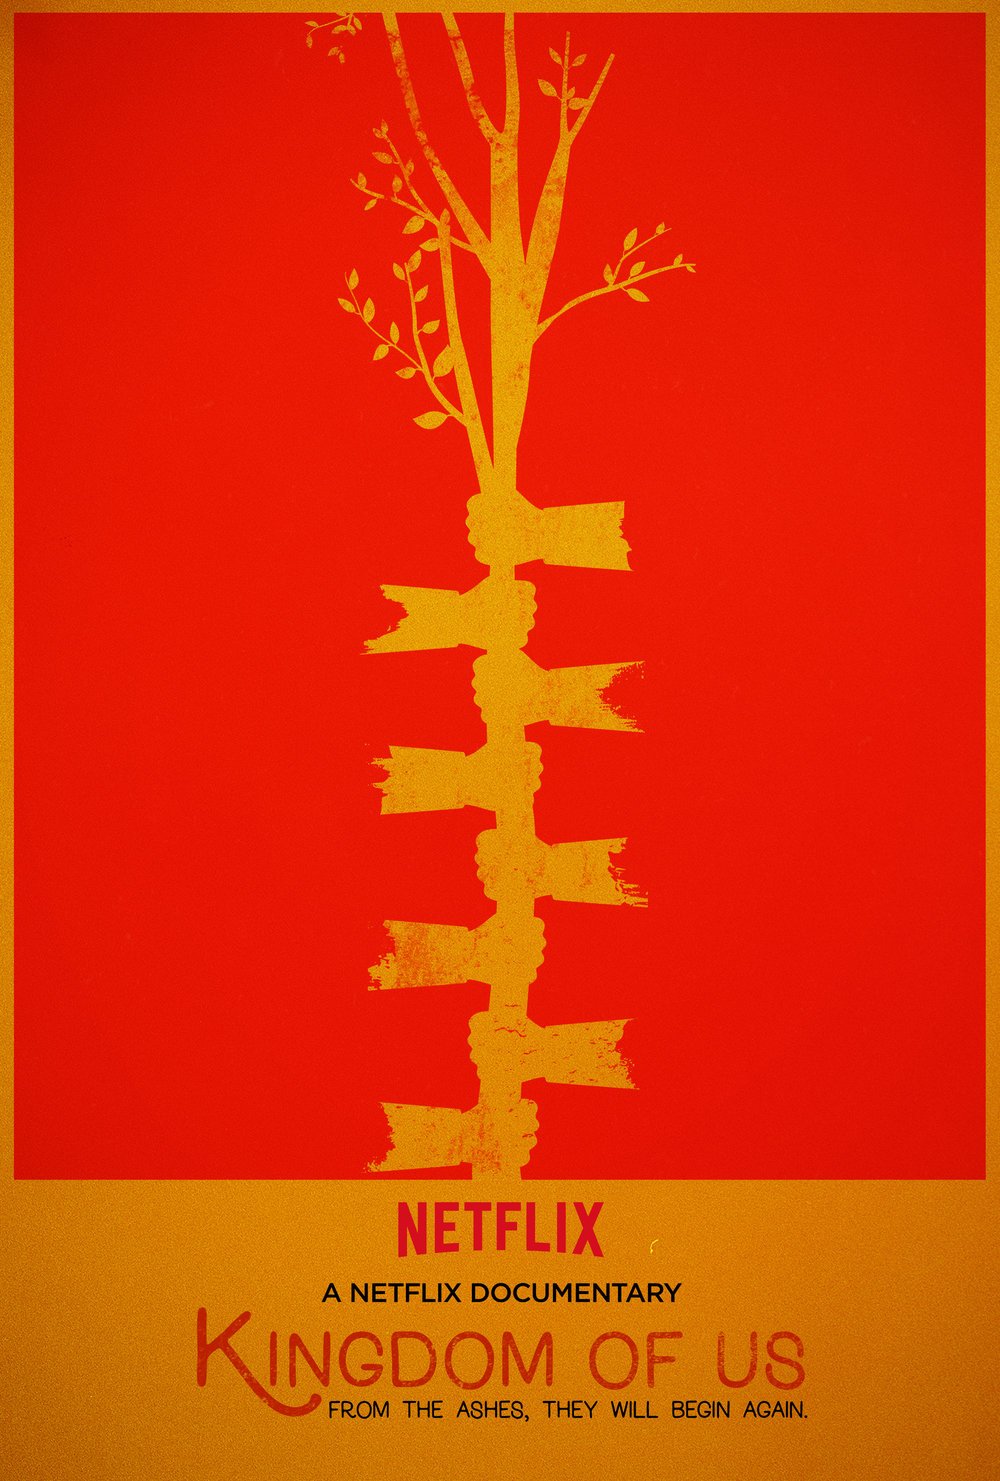 1Sheet_NetflixDoc-COMP_SF13.jpg